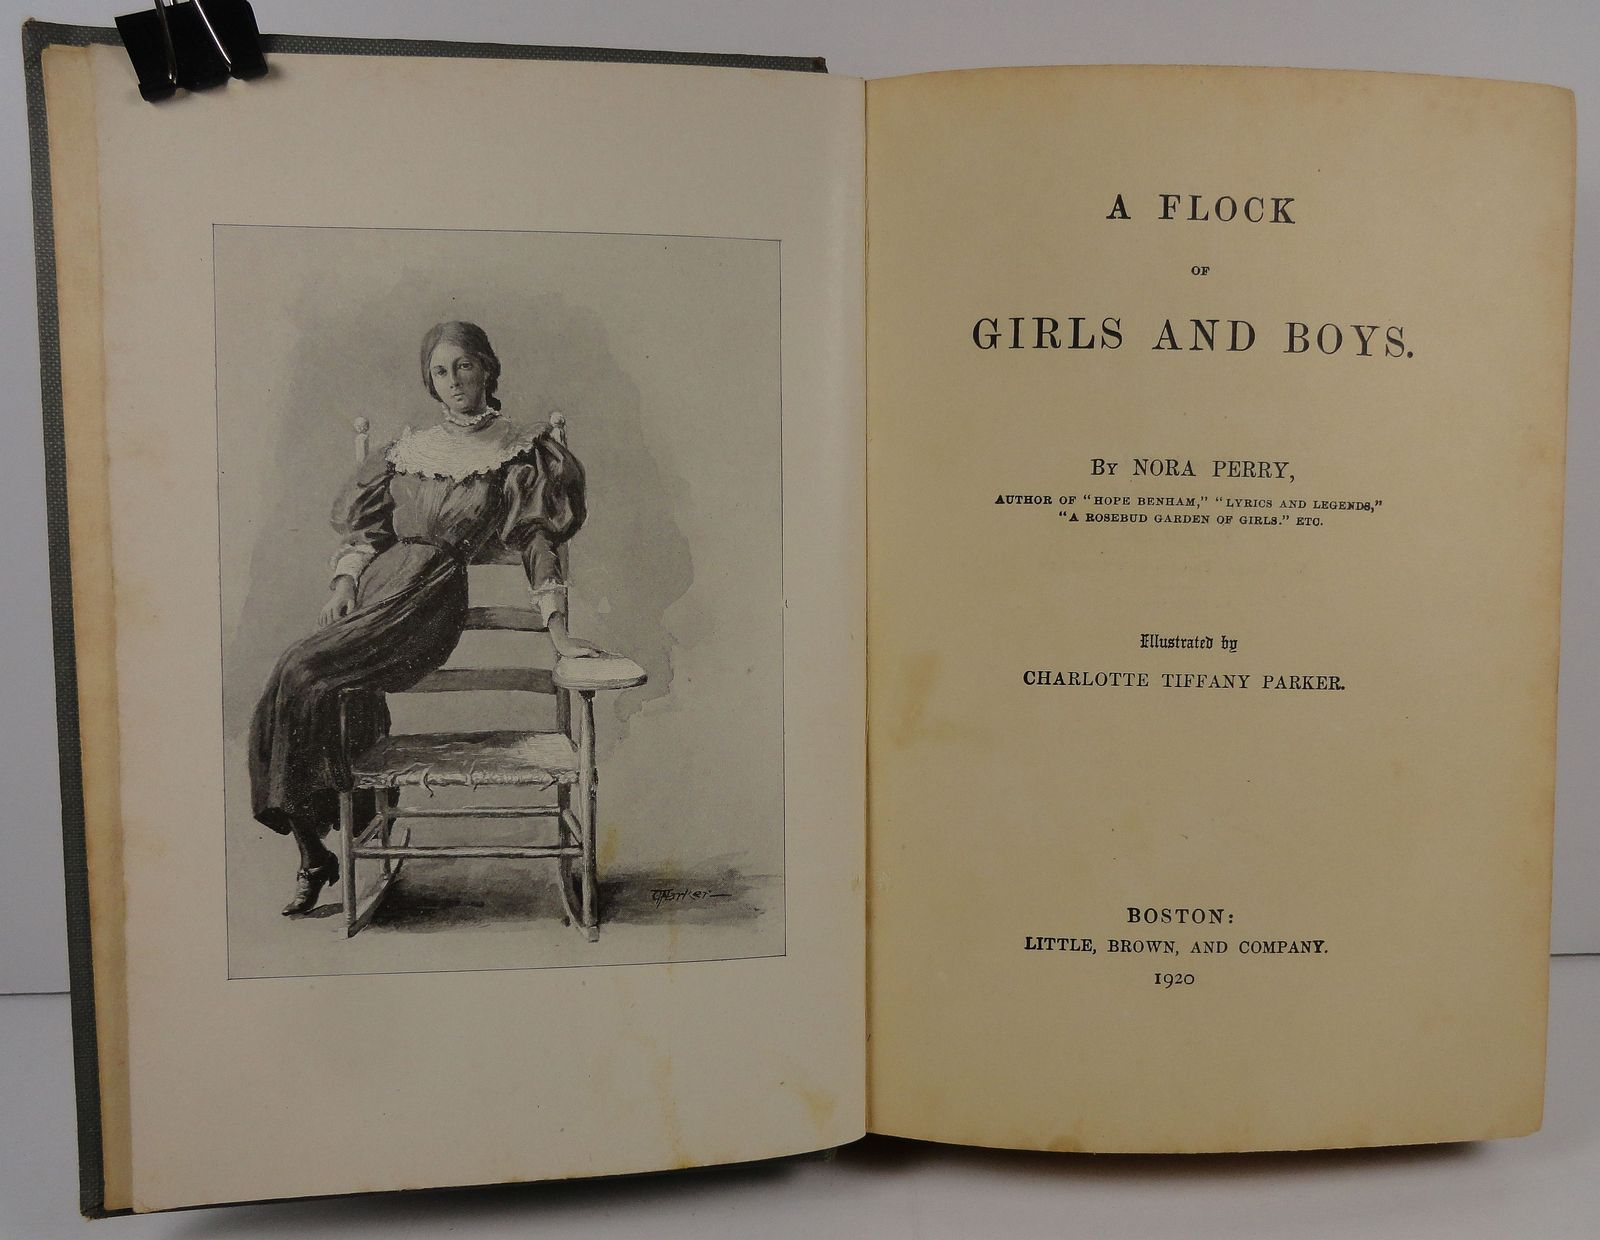 A Flock of Girls and Boys by Nora Perry 1920 Little, Brown